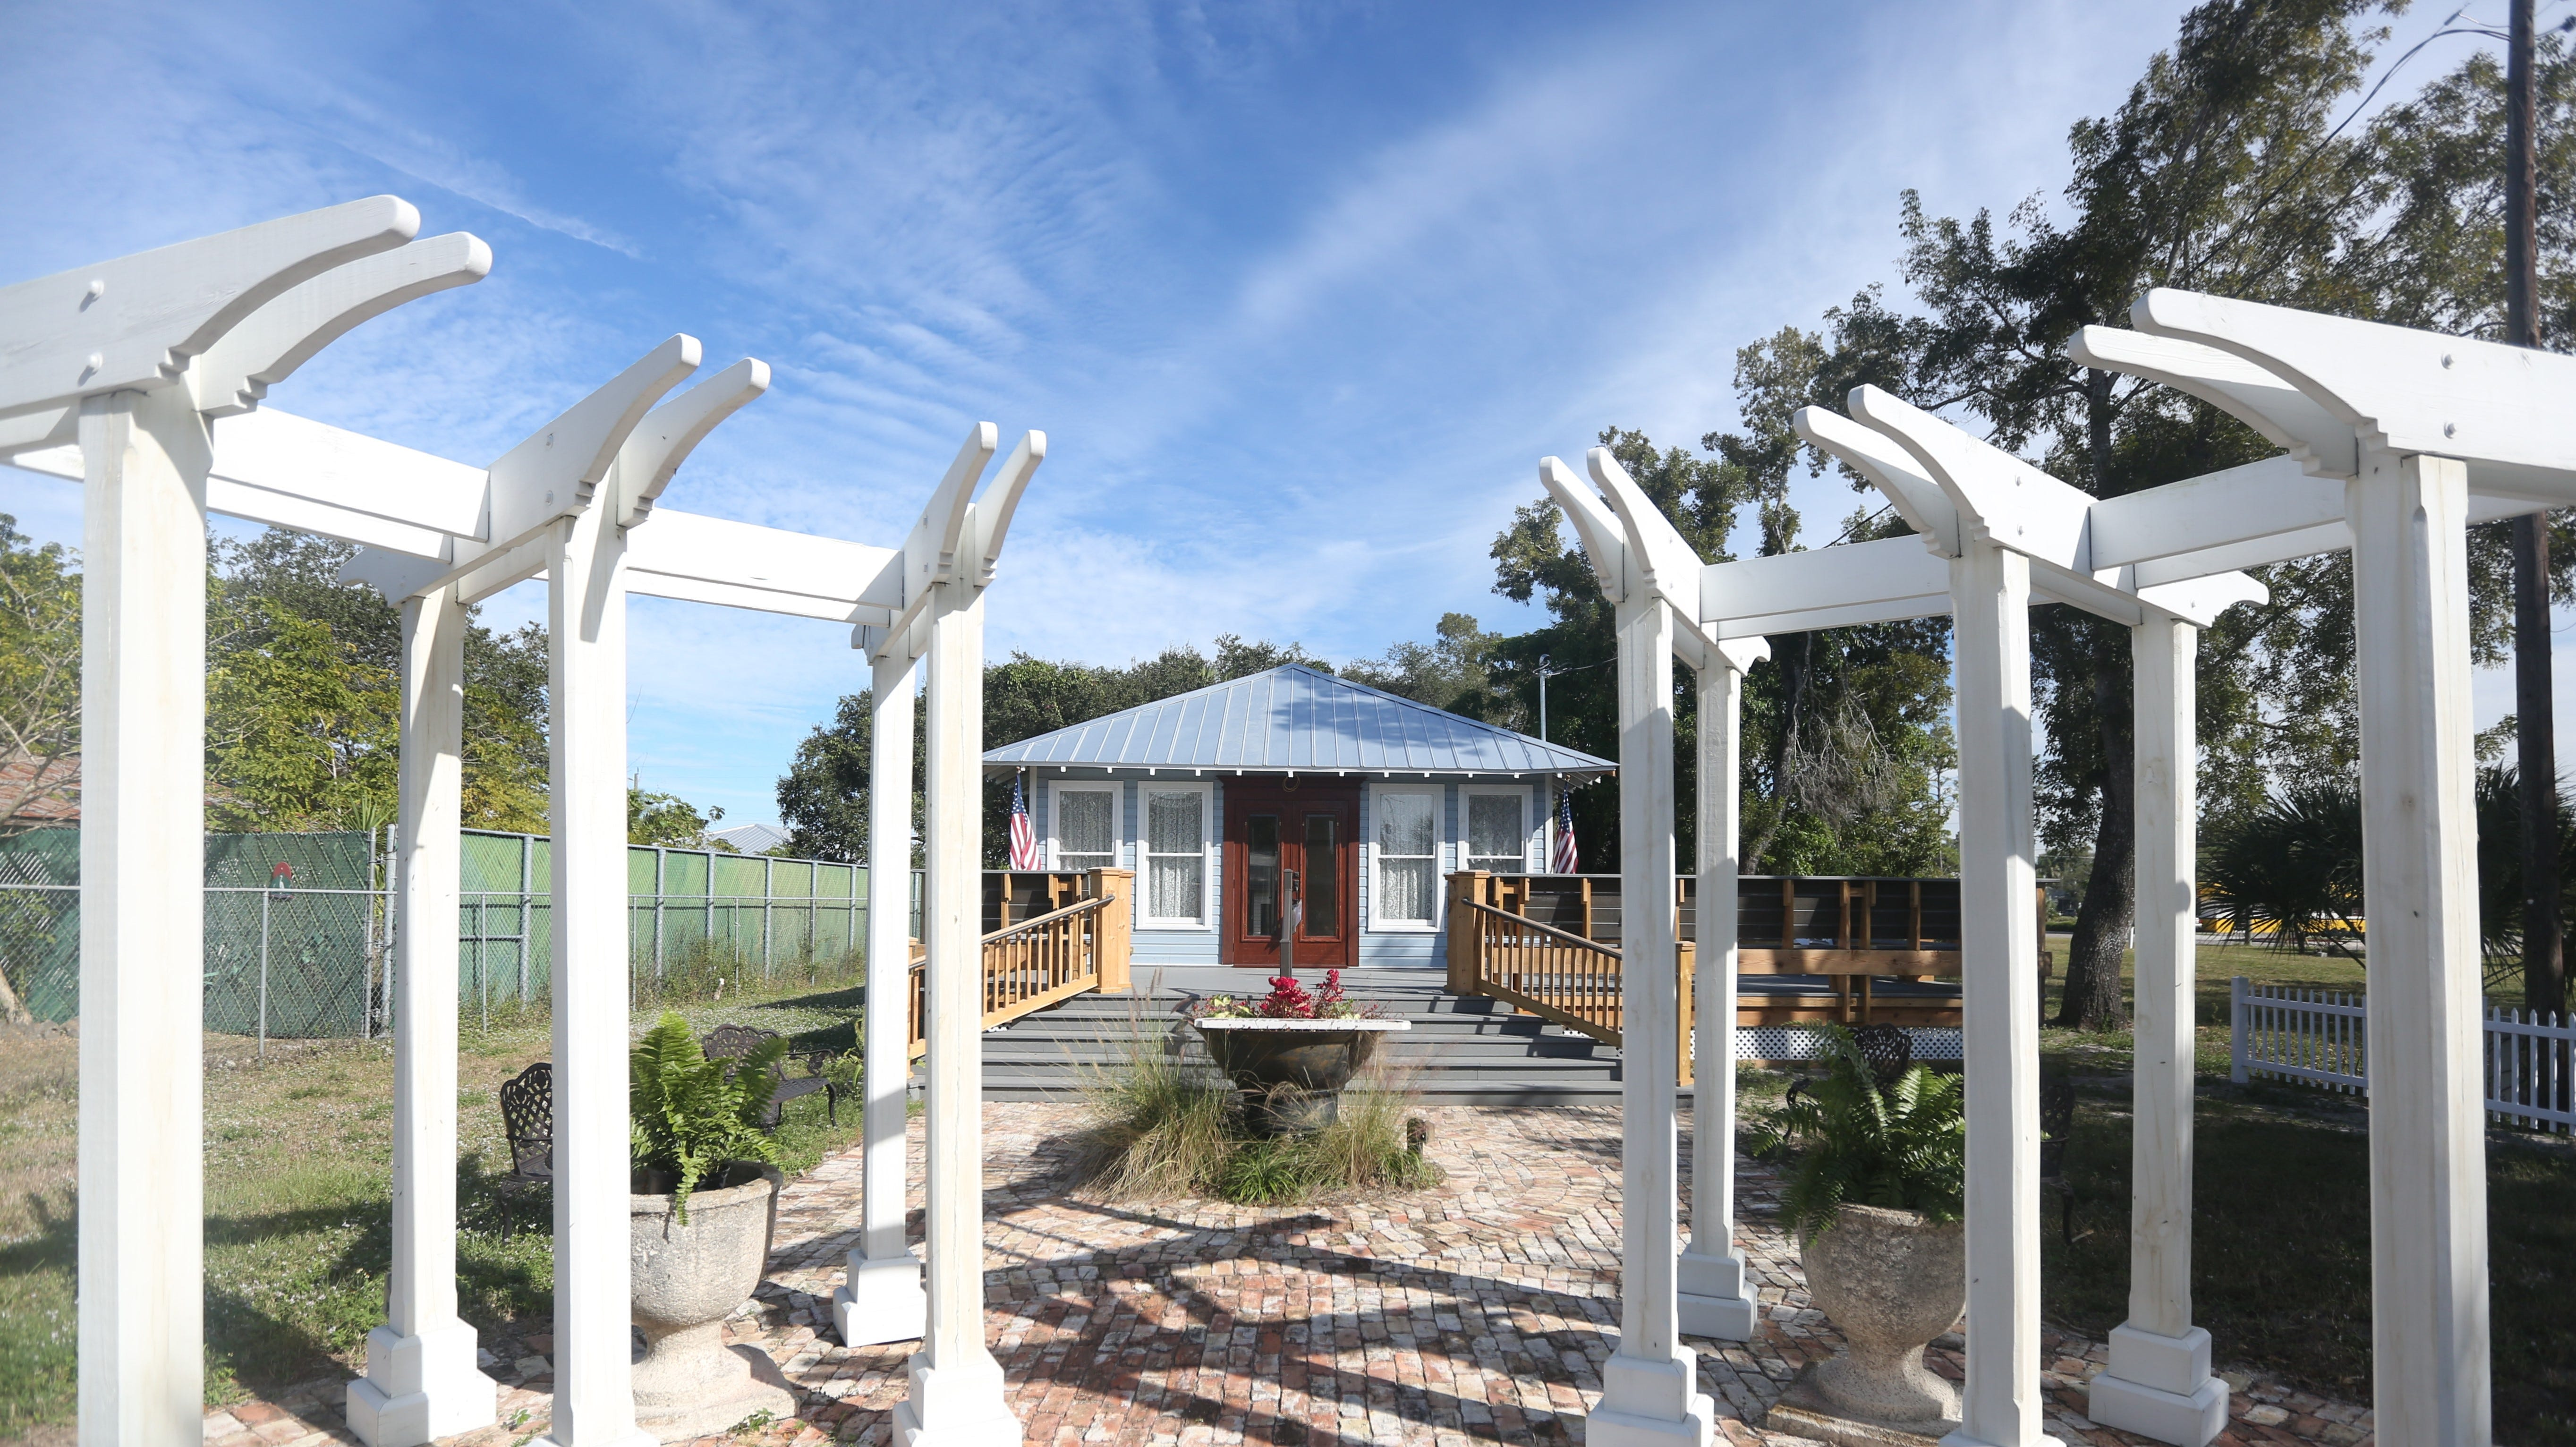 After more than a year of renovations and fixes, the McSwain House in downtown Bonita Springs is nearly back to its former glory.